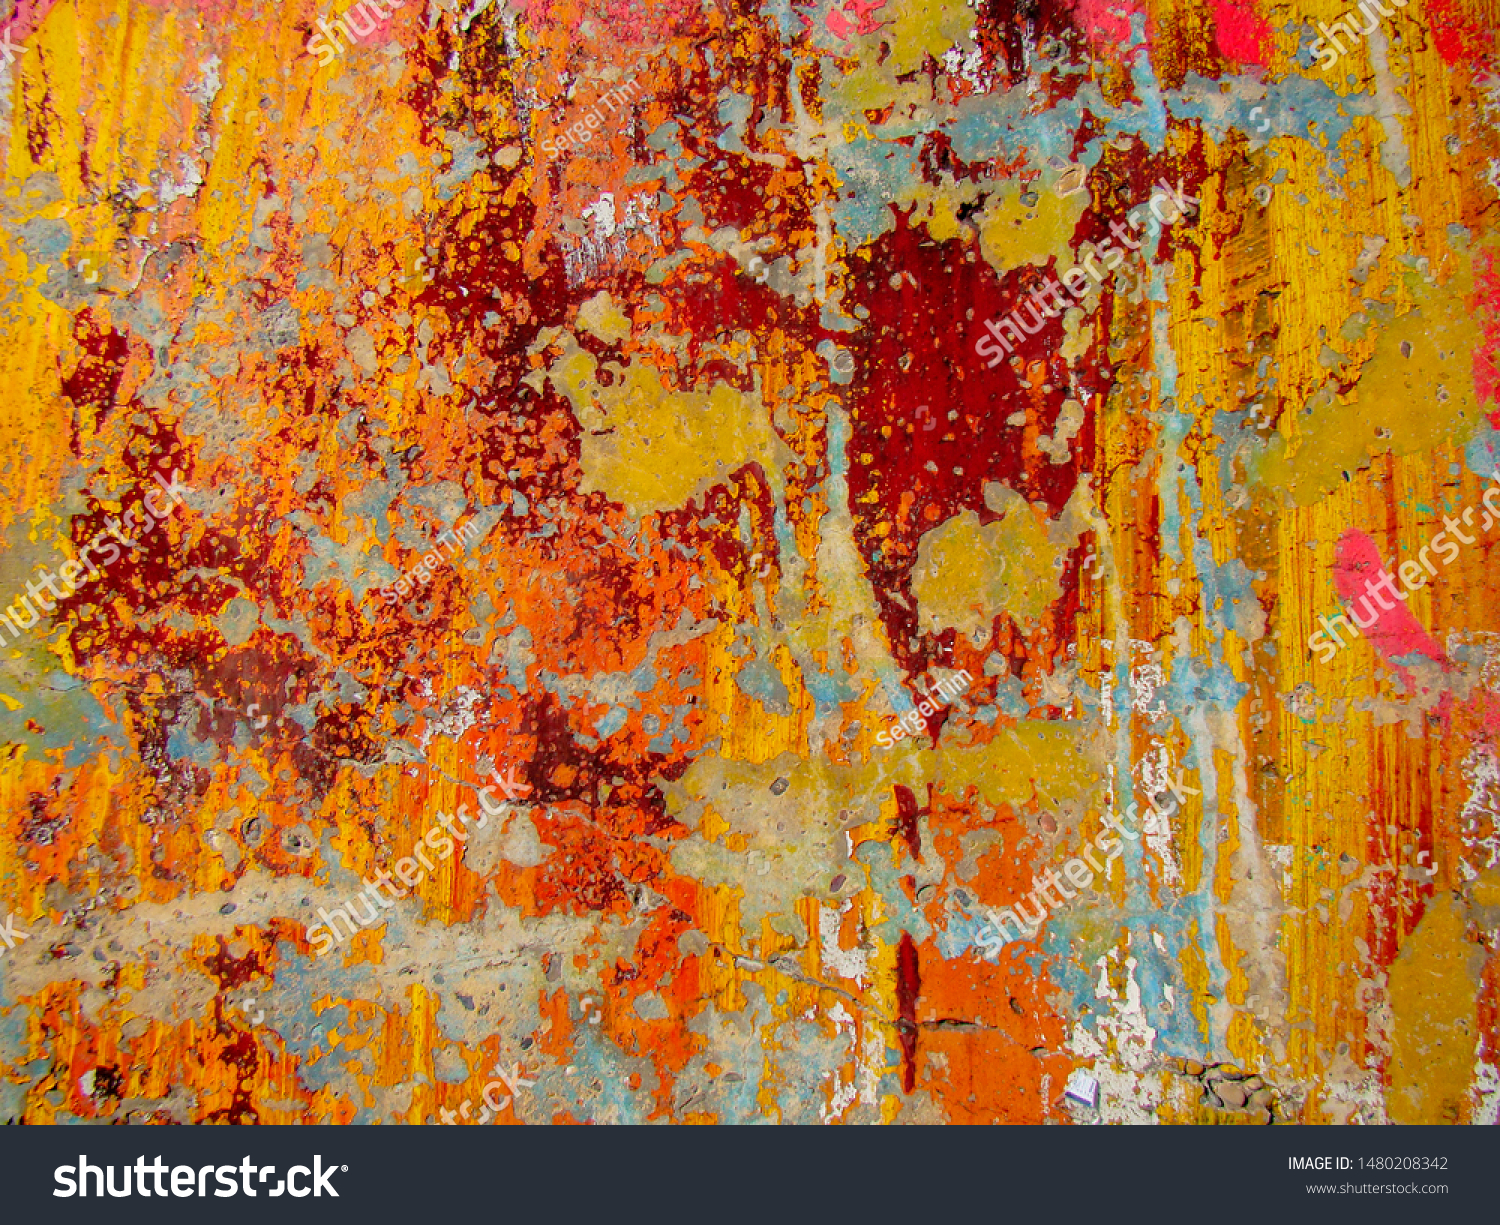 stock-photo-old-multi-colored-paints-on-